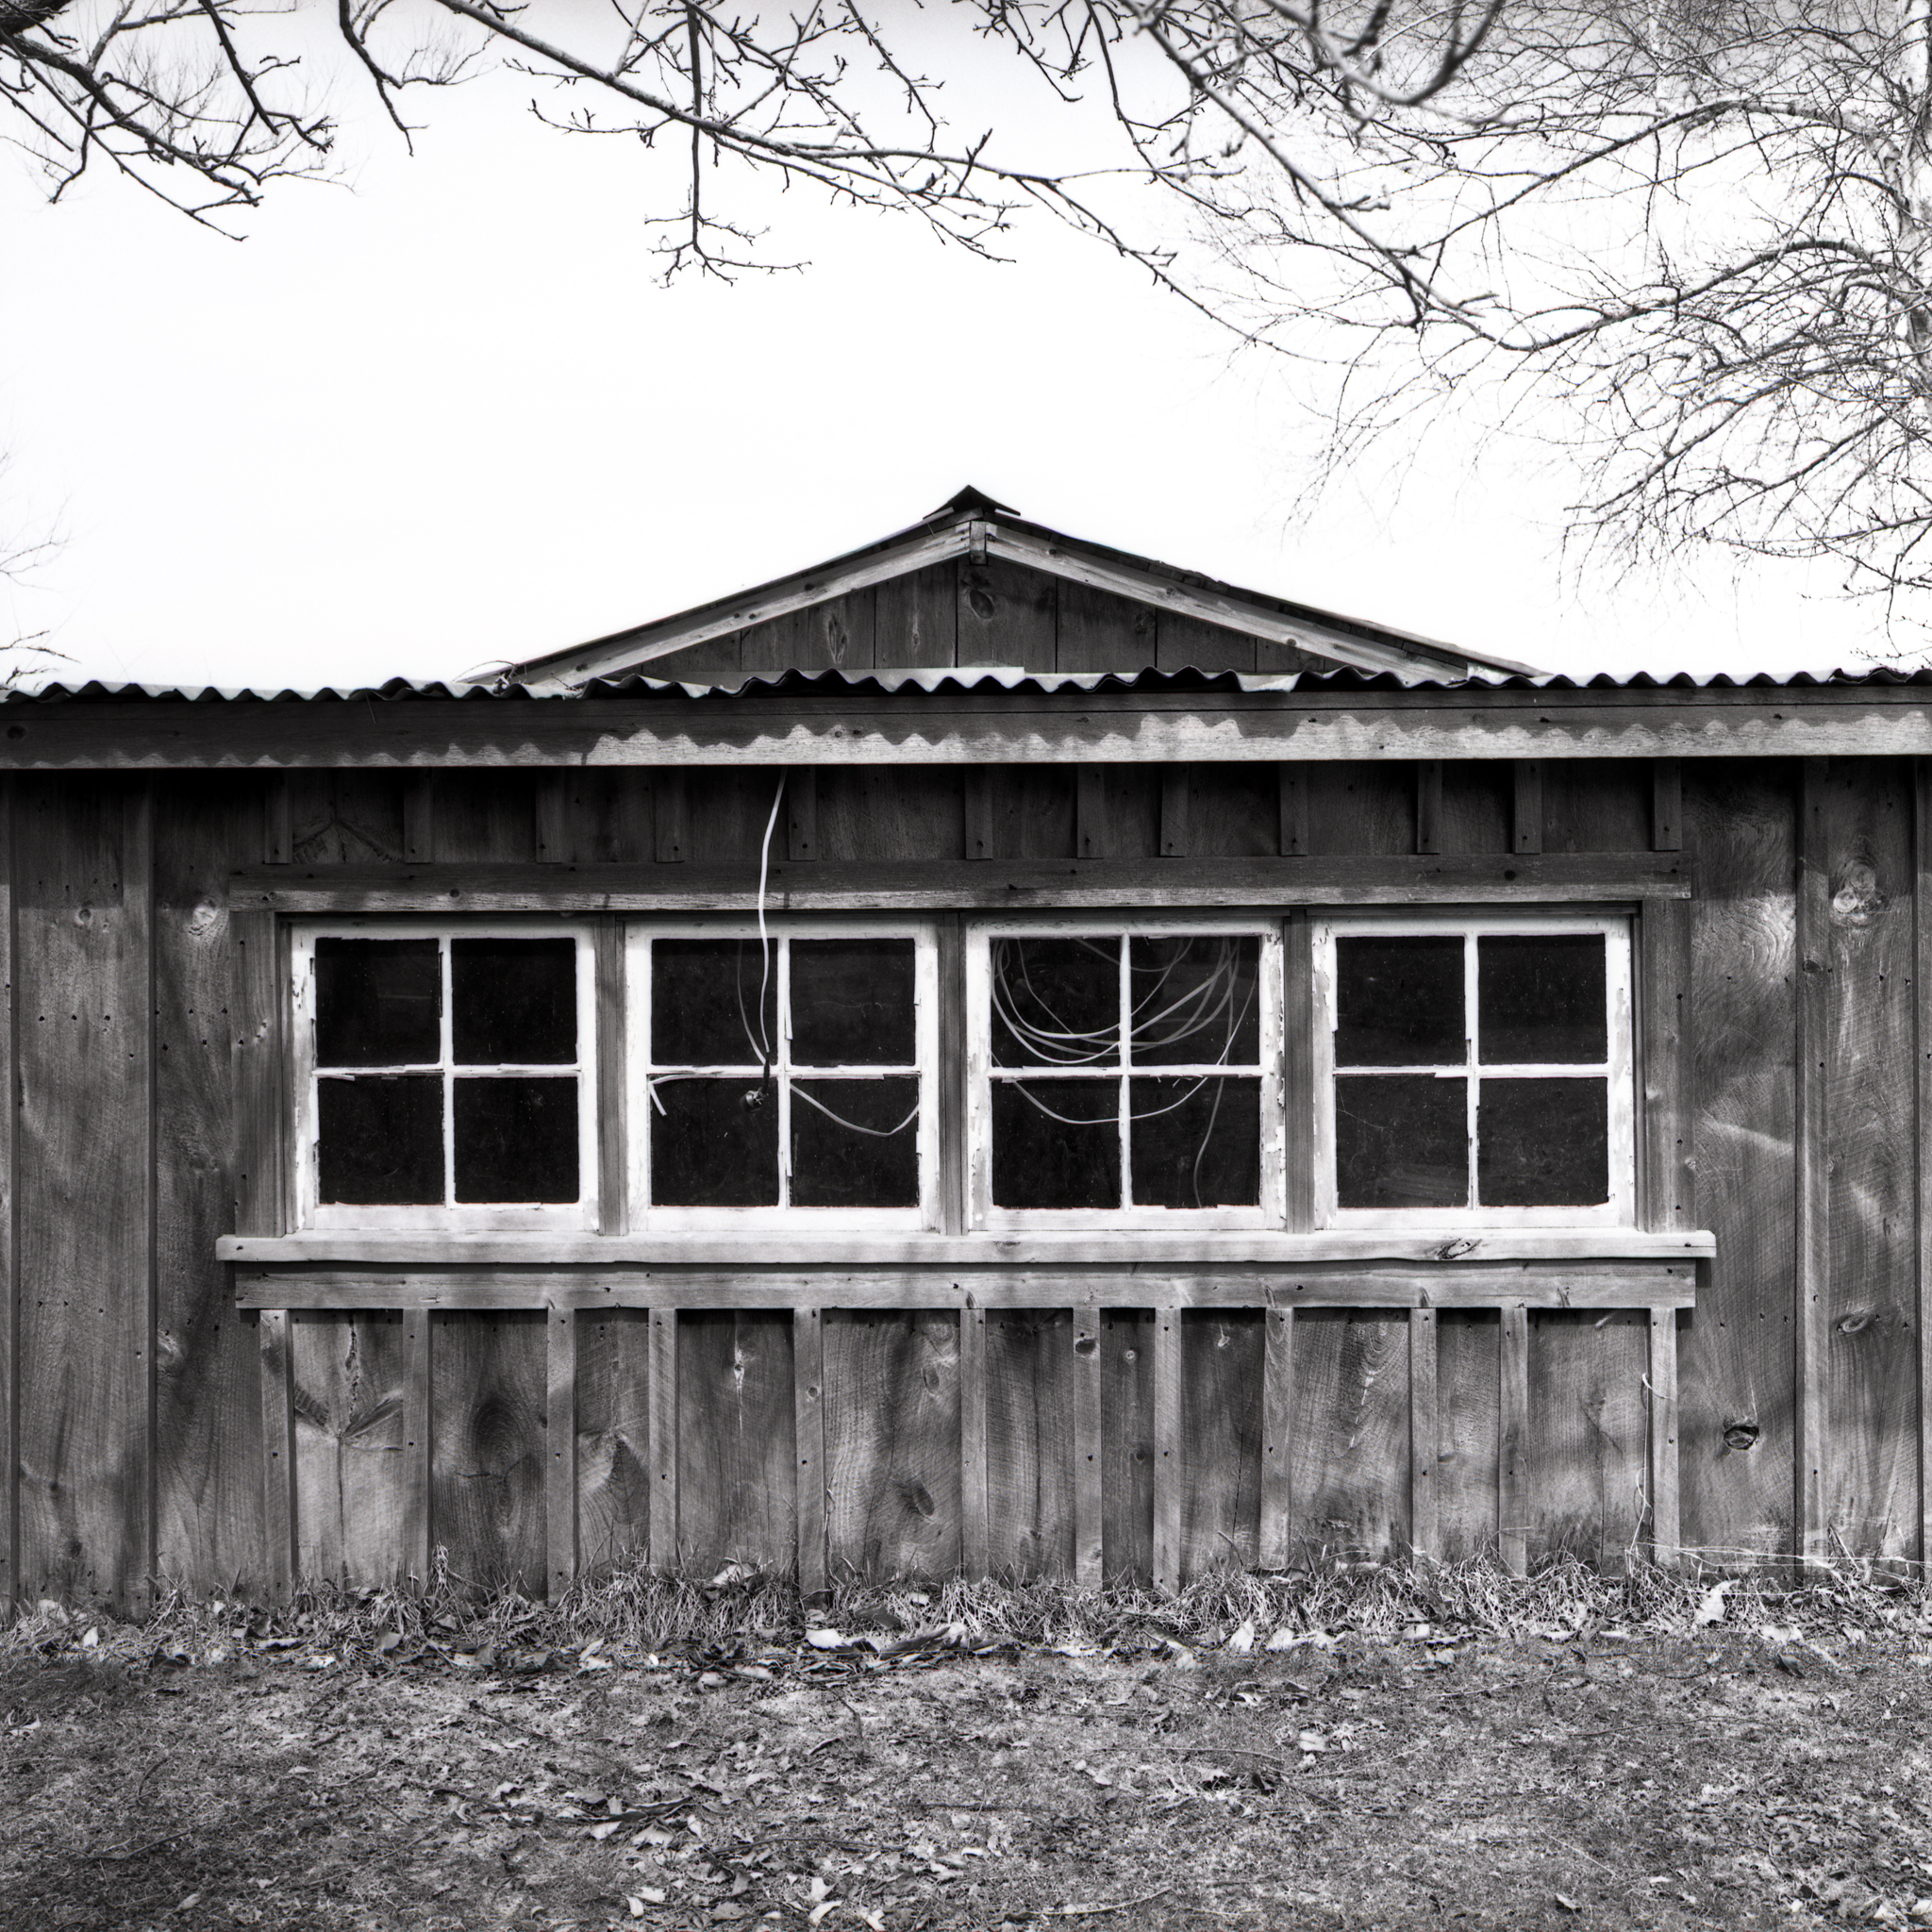 Eckley_Miners_Village_2018-04-07_Bronica_SQ-A_65mm_Tmax_400_at_400_HC-110_Semi-Stand_1_100_1hr_outbuildings_005.jpg